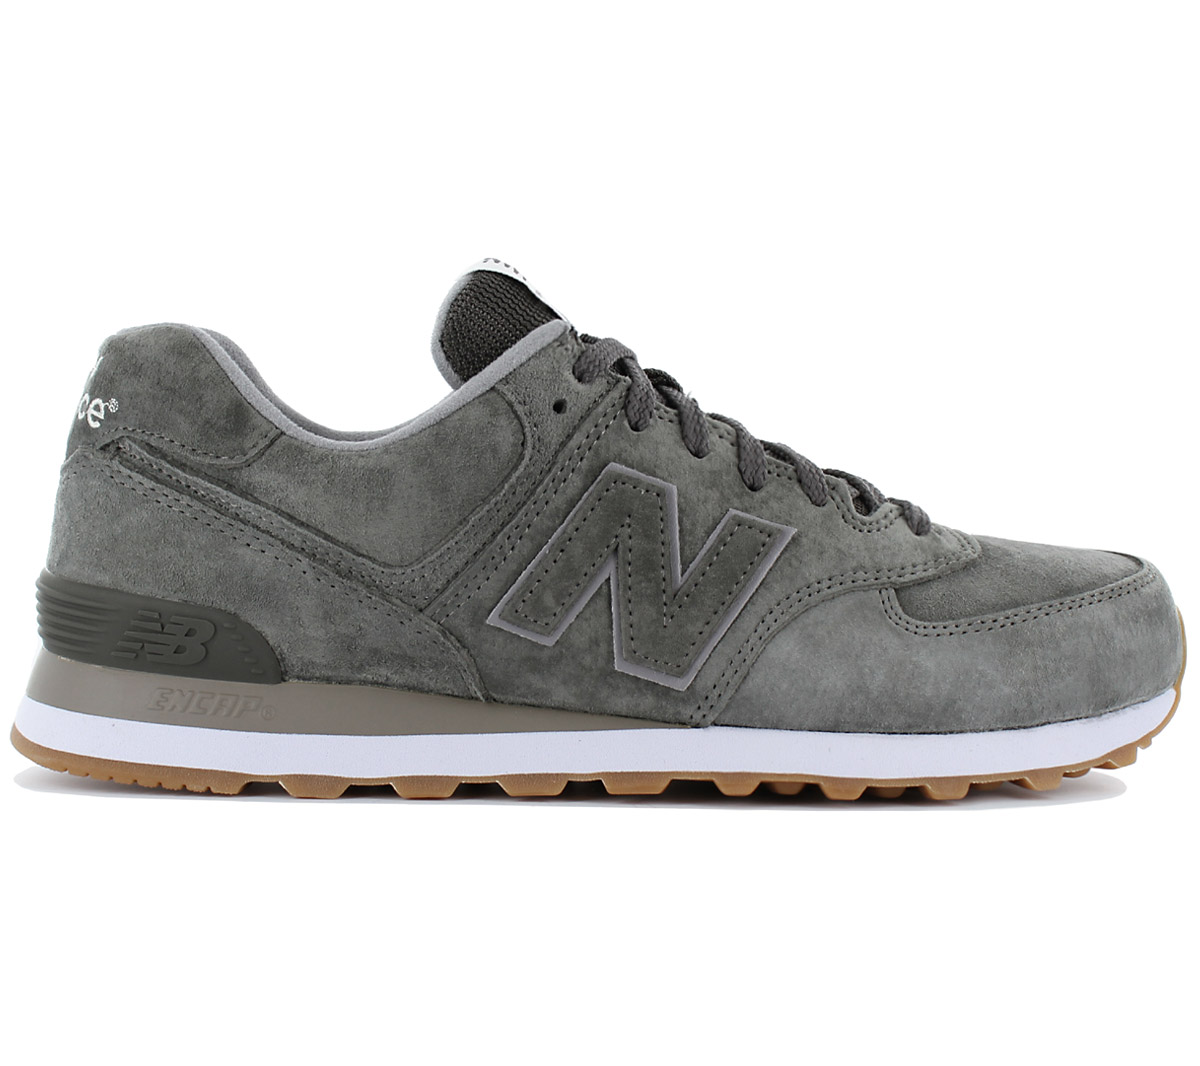 new balance classics 574 leder sneaker herren schuhe grau. Black Bedroom Furniture Sets. Home Design Ideas